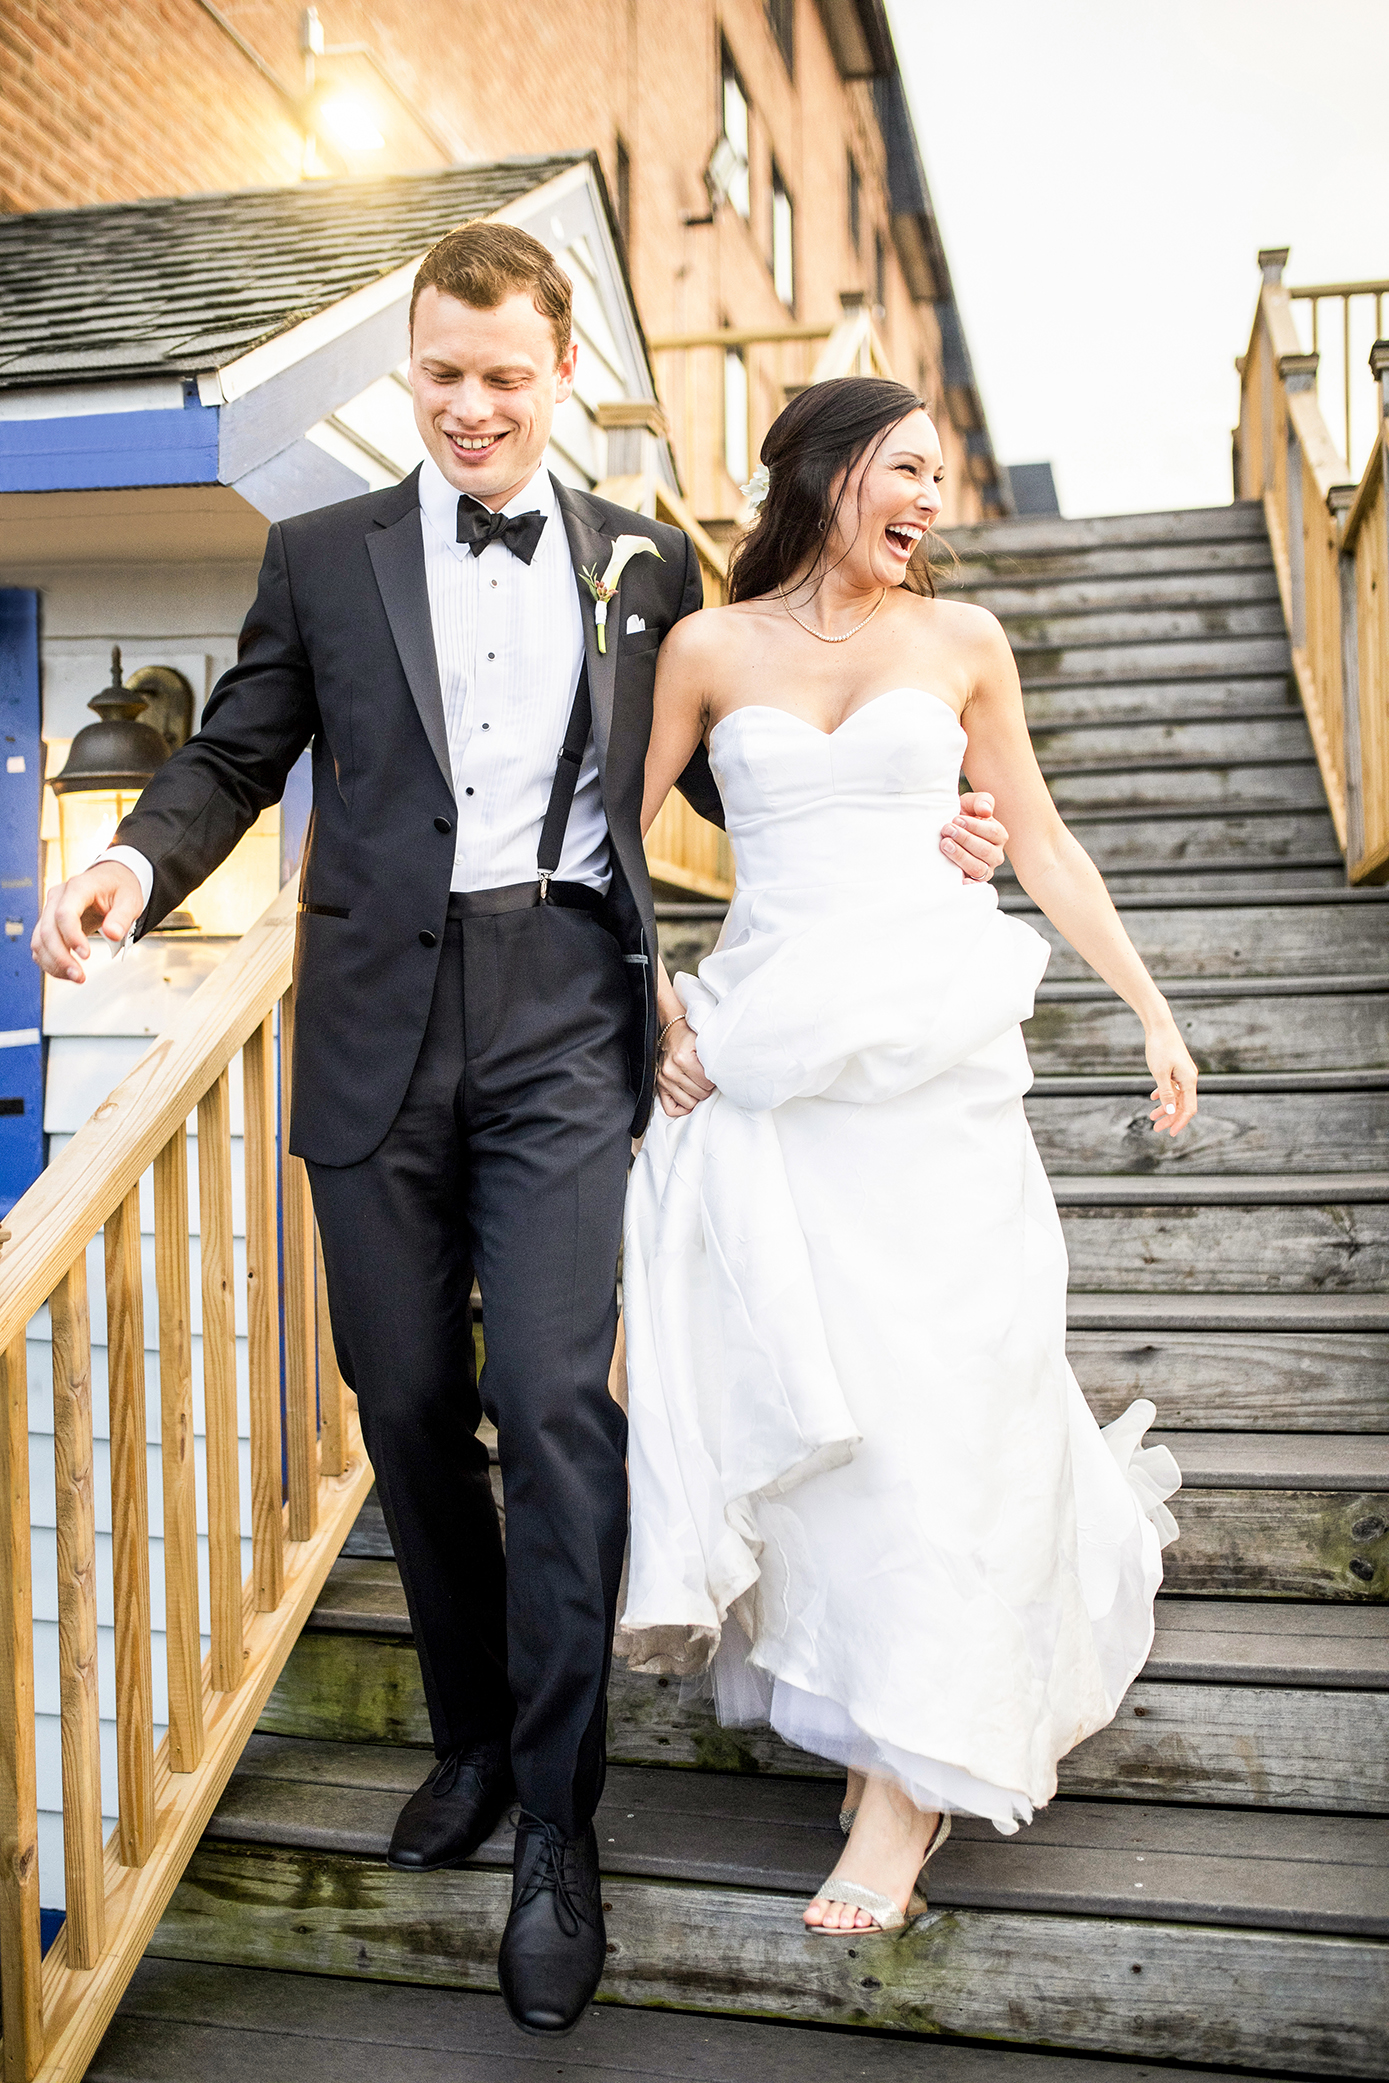 Happy bride in strapless gown with groom descending wooden stairs - photo by Anna Schmidt Photography